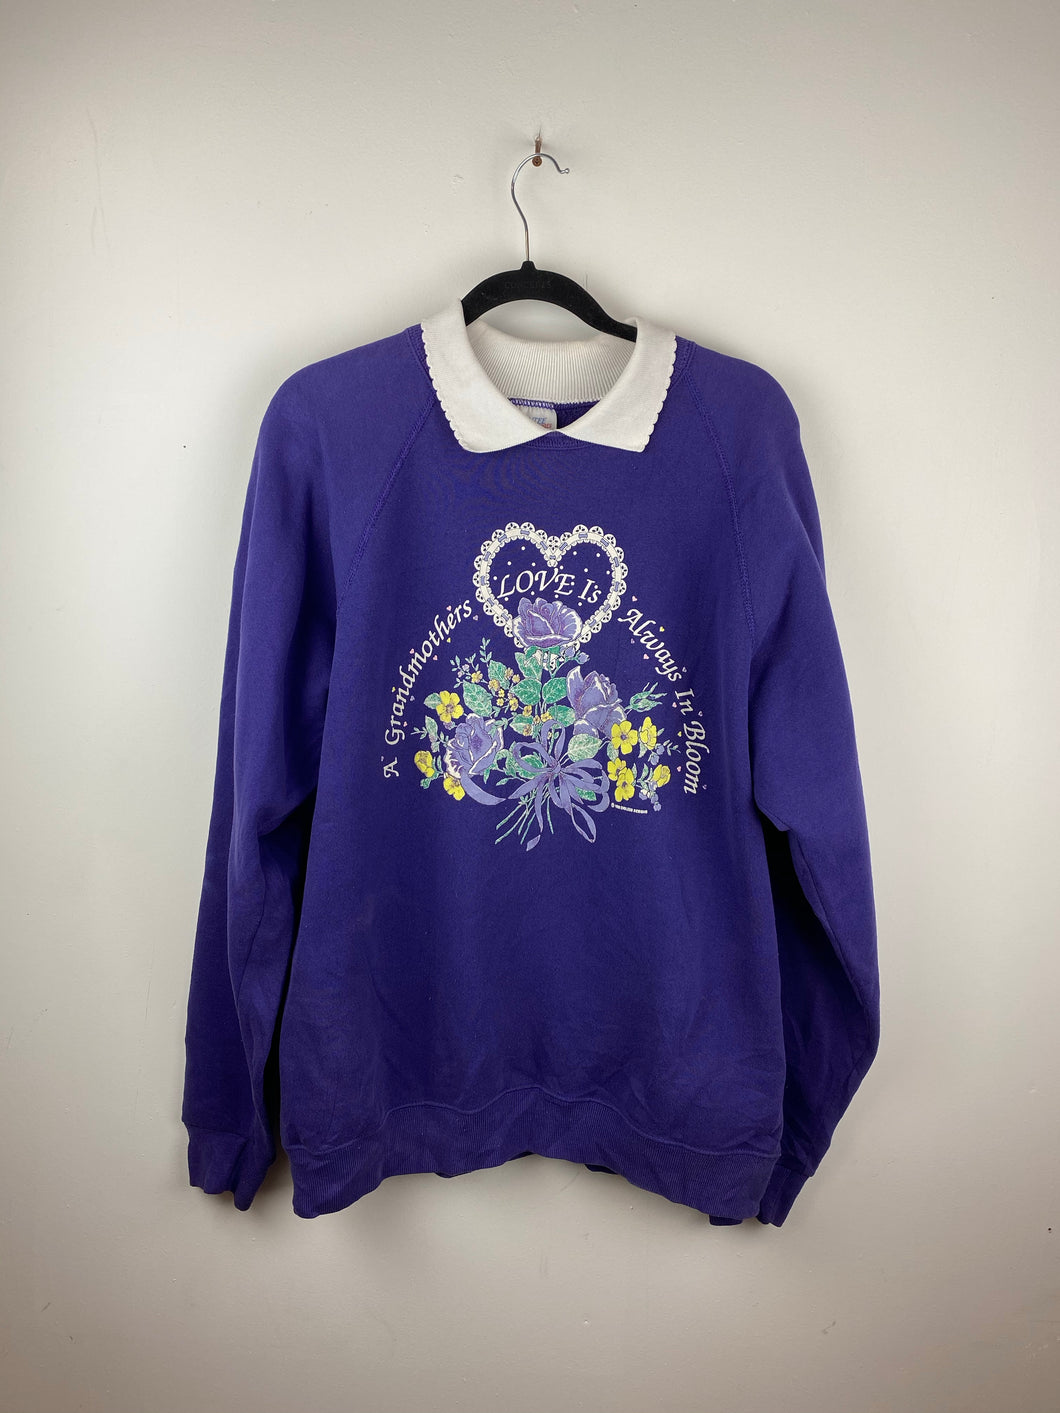 Vintage Grandmothers Love collared crewneck